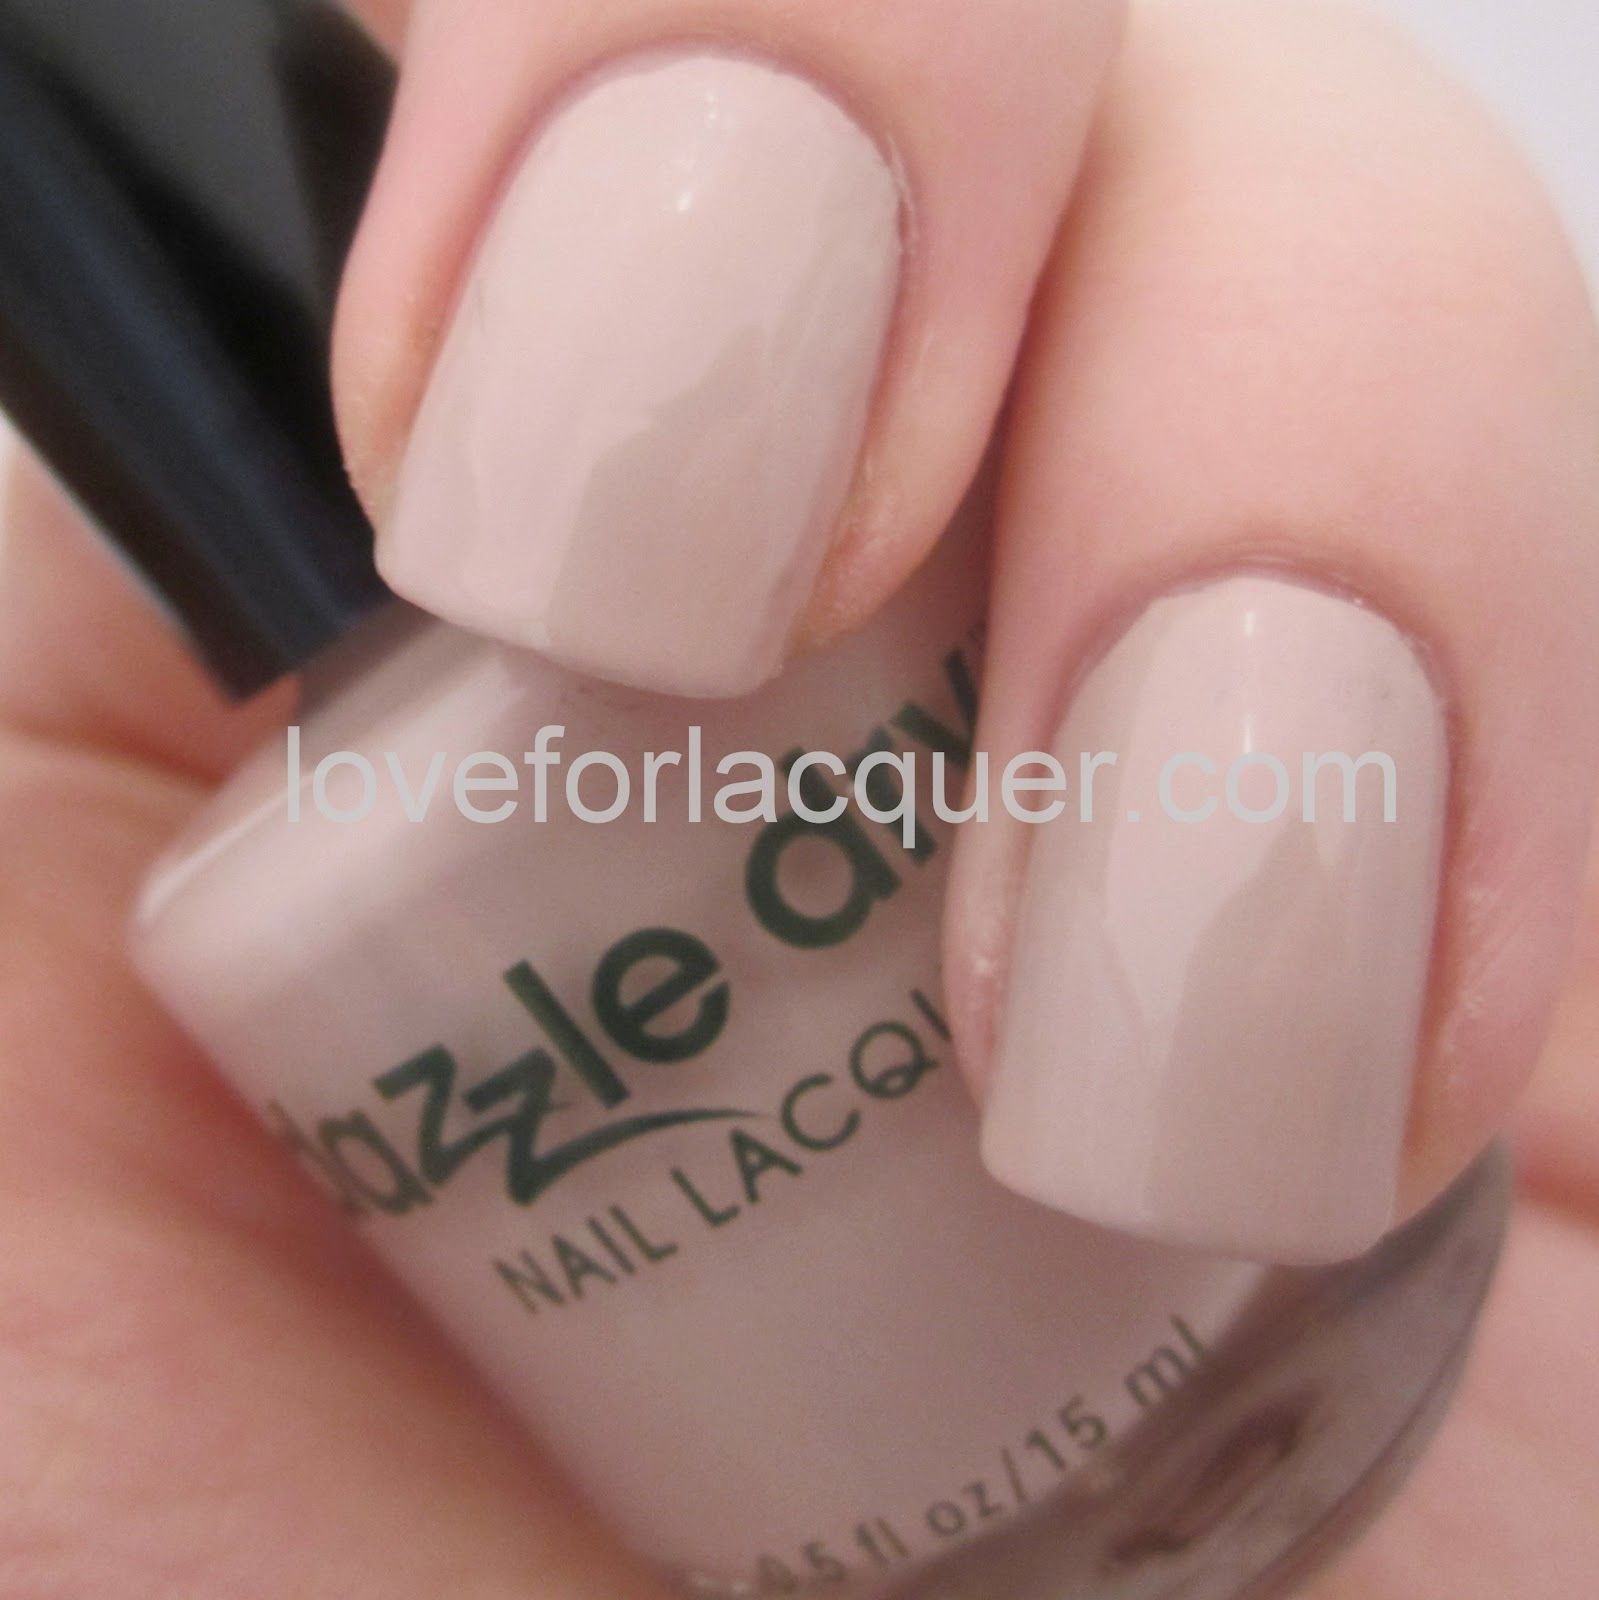 Dazzle Dry Sentimental | Nails | Pinterest | Clean nails, Nail ...